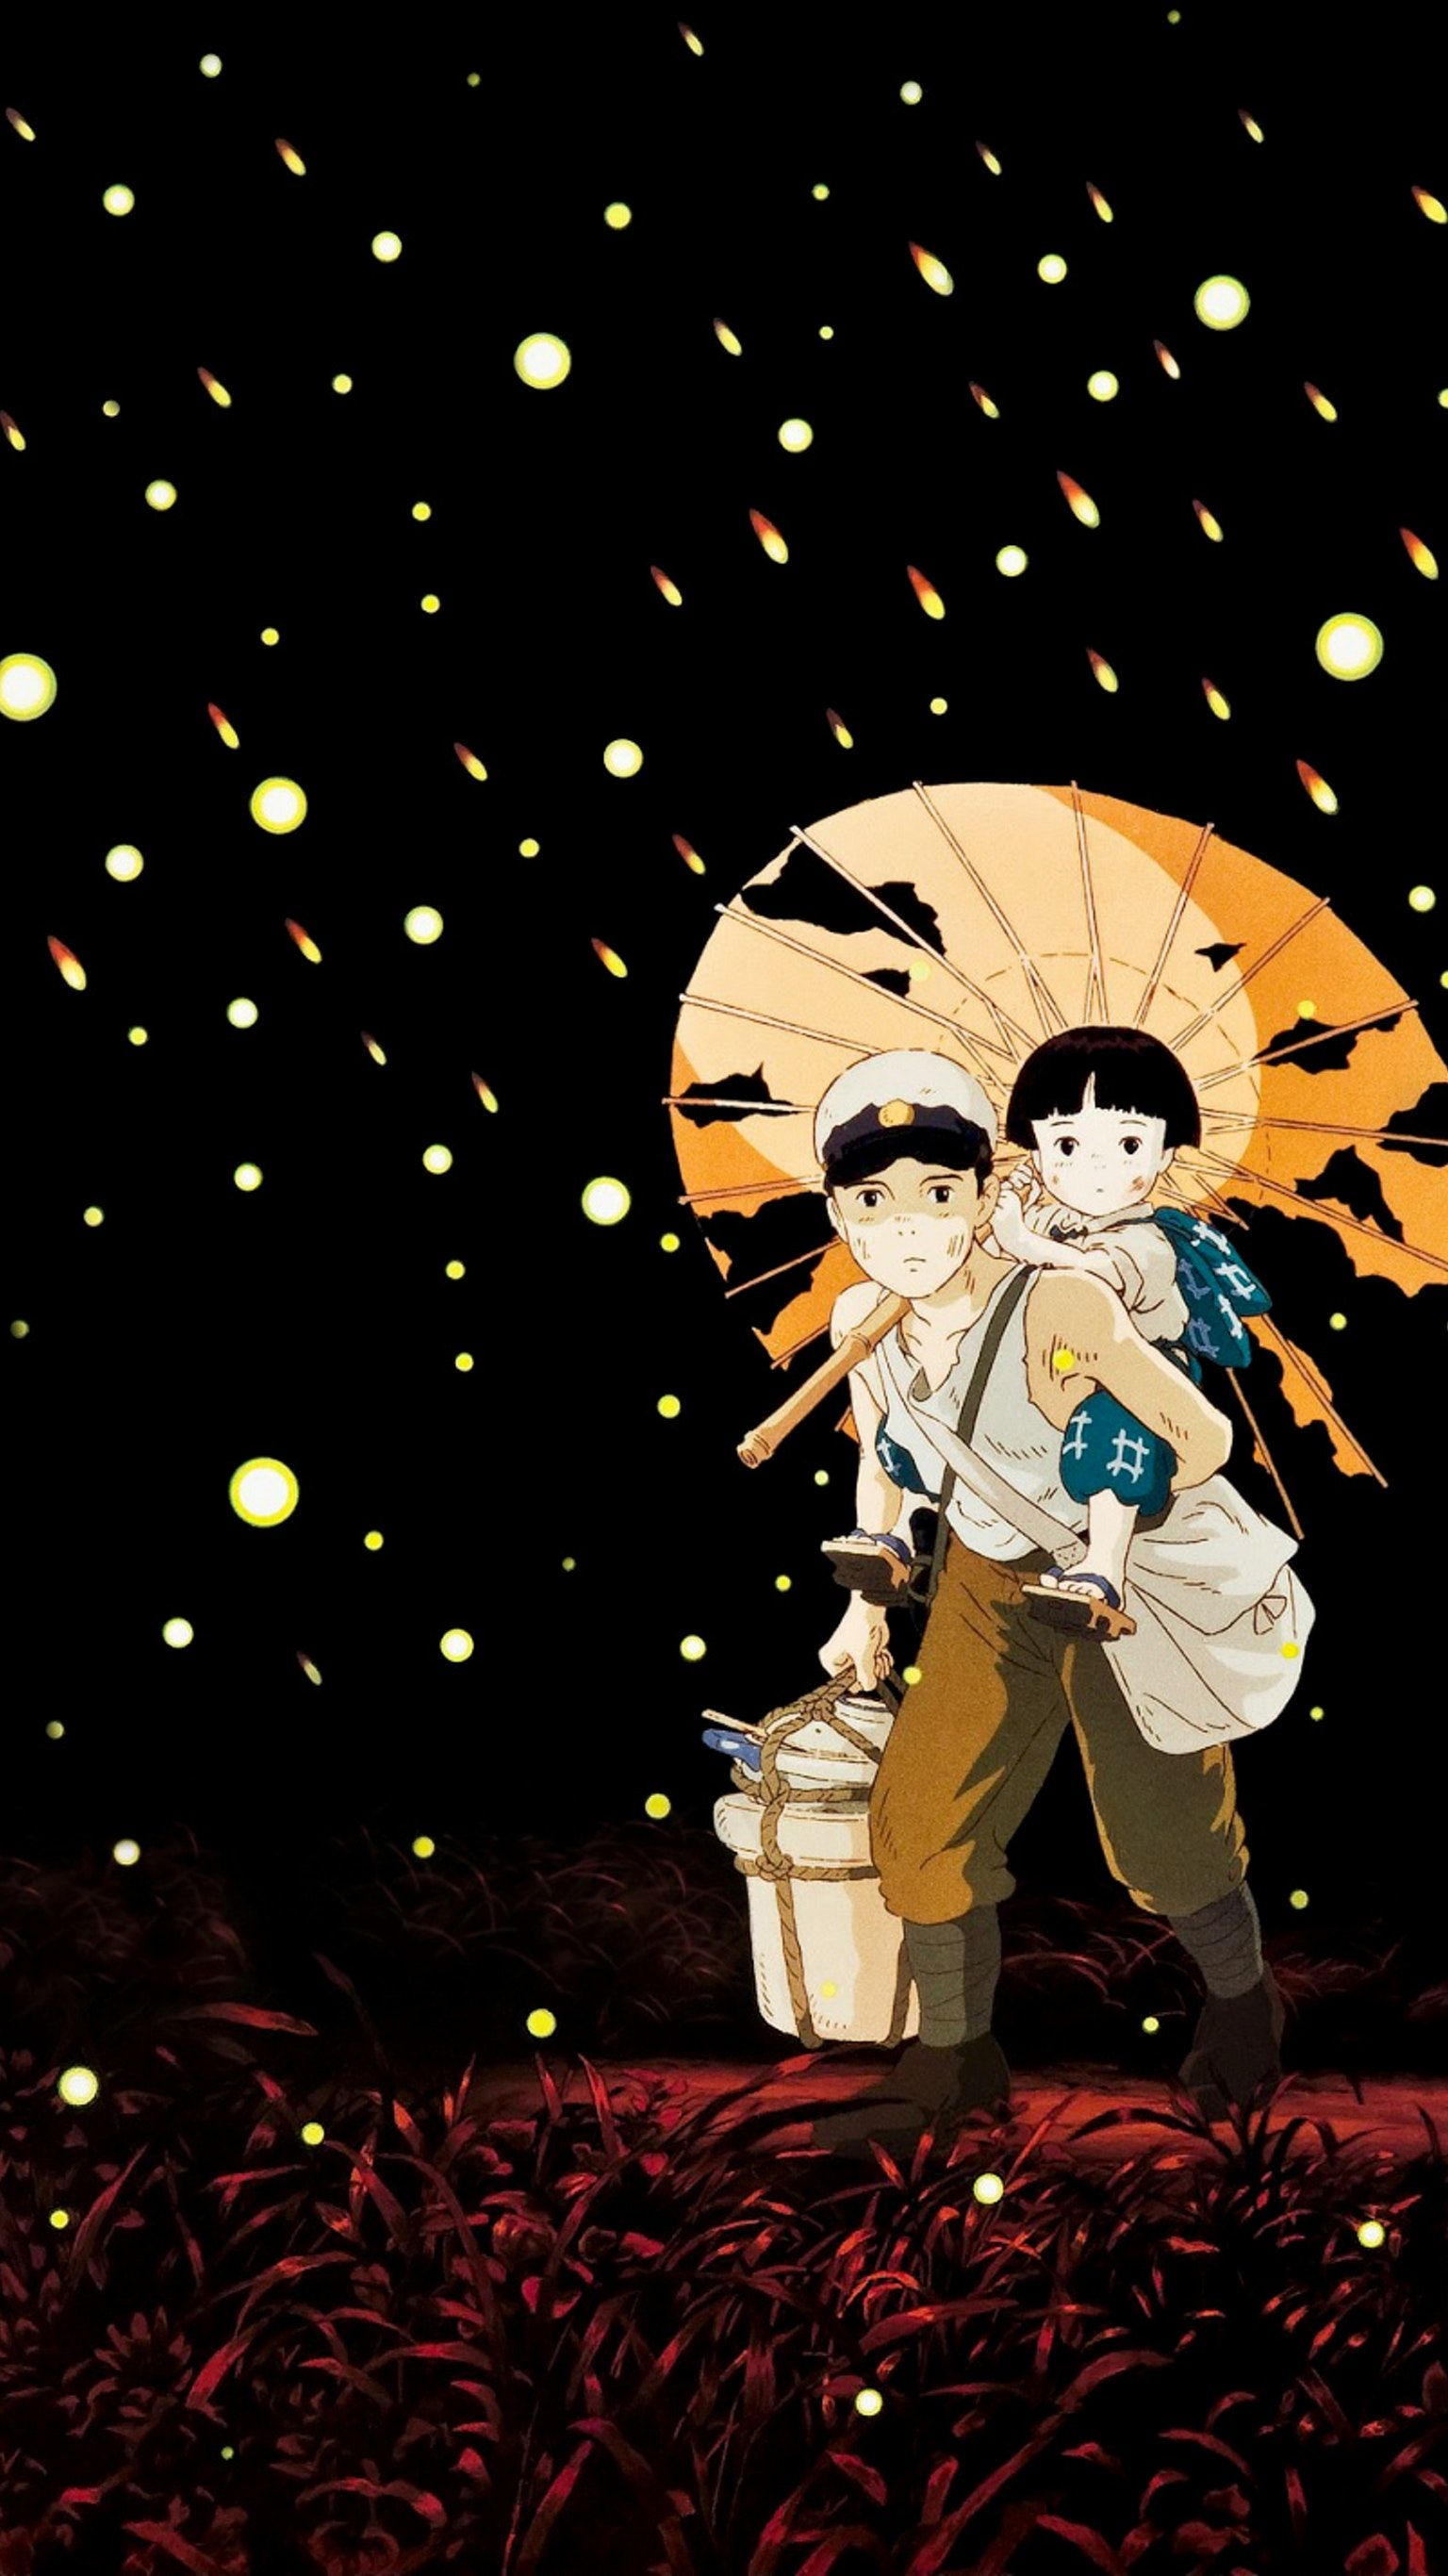 Grave Of The Fireflies 1988 Phone Wallpaper Moviemania Anime Wallpaper Grave Of The Fireflies Anime